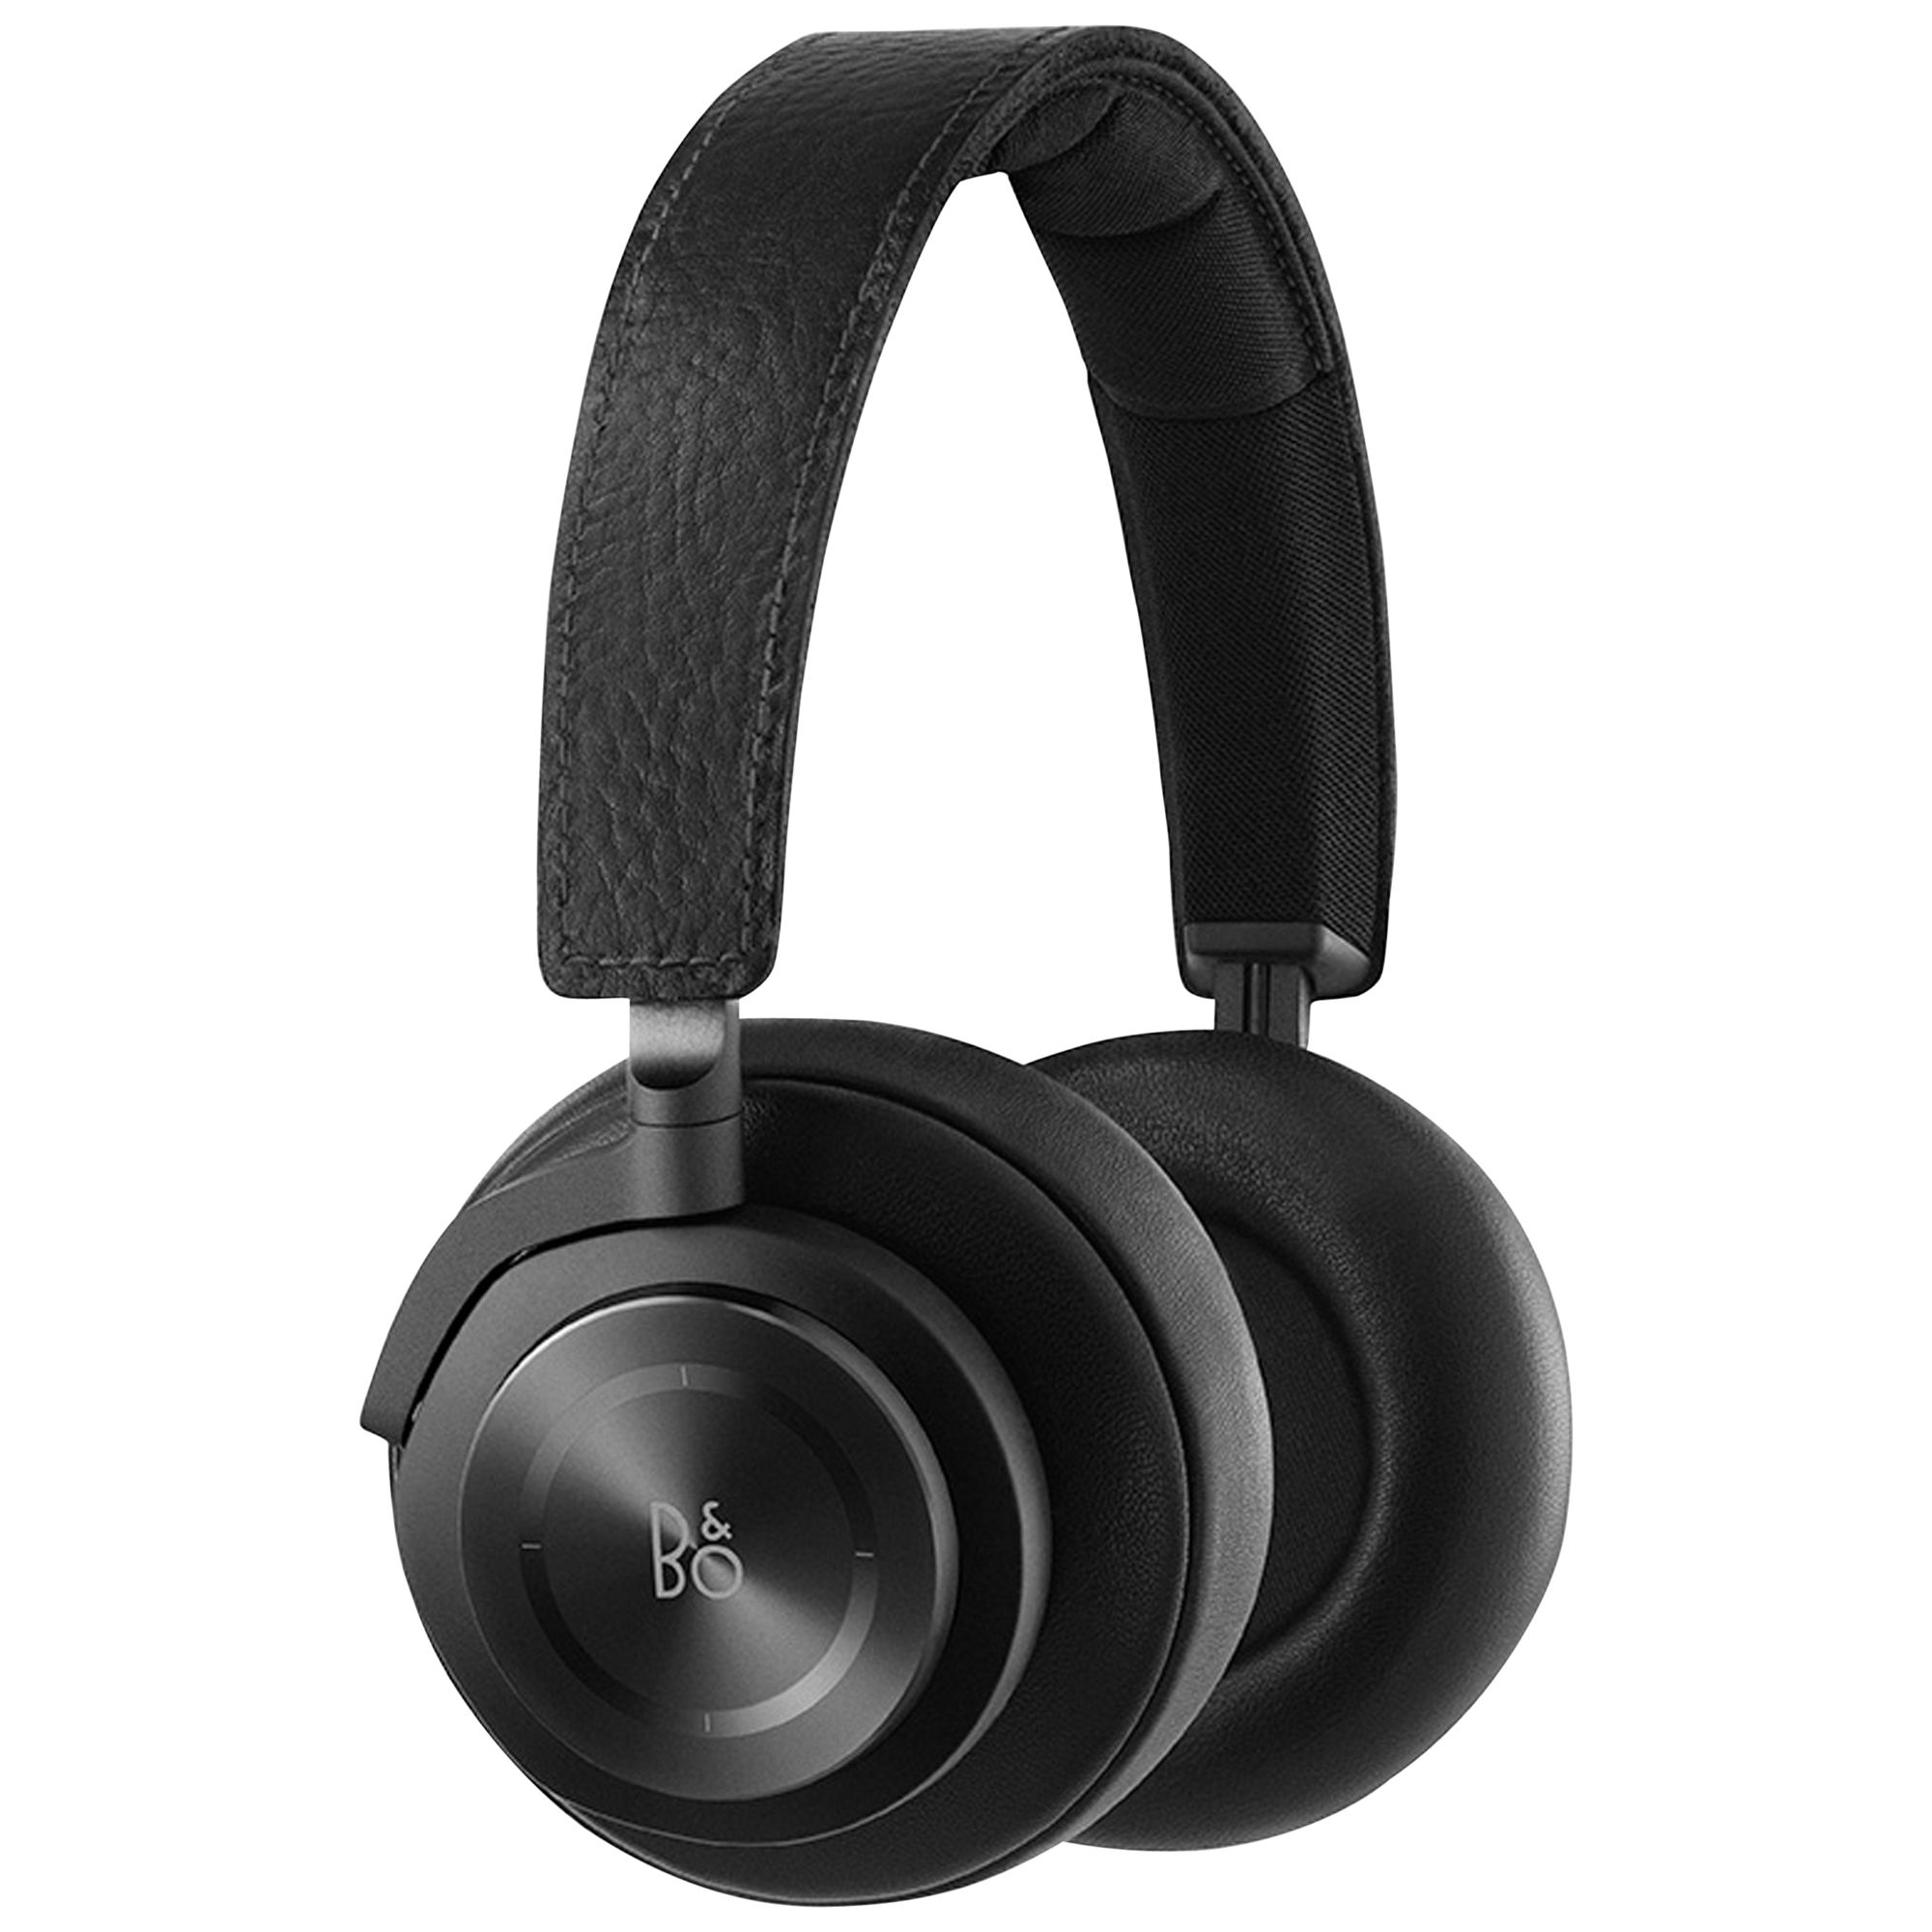 Bang & Olufsen B&O PLAY by Bang & Olufsen Beoplay H7 Wireless Bluetooth Full-Size Headphones with Intuitive Touch Interface